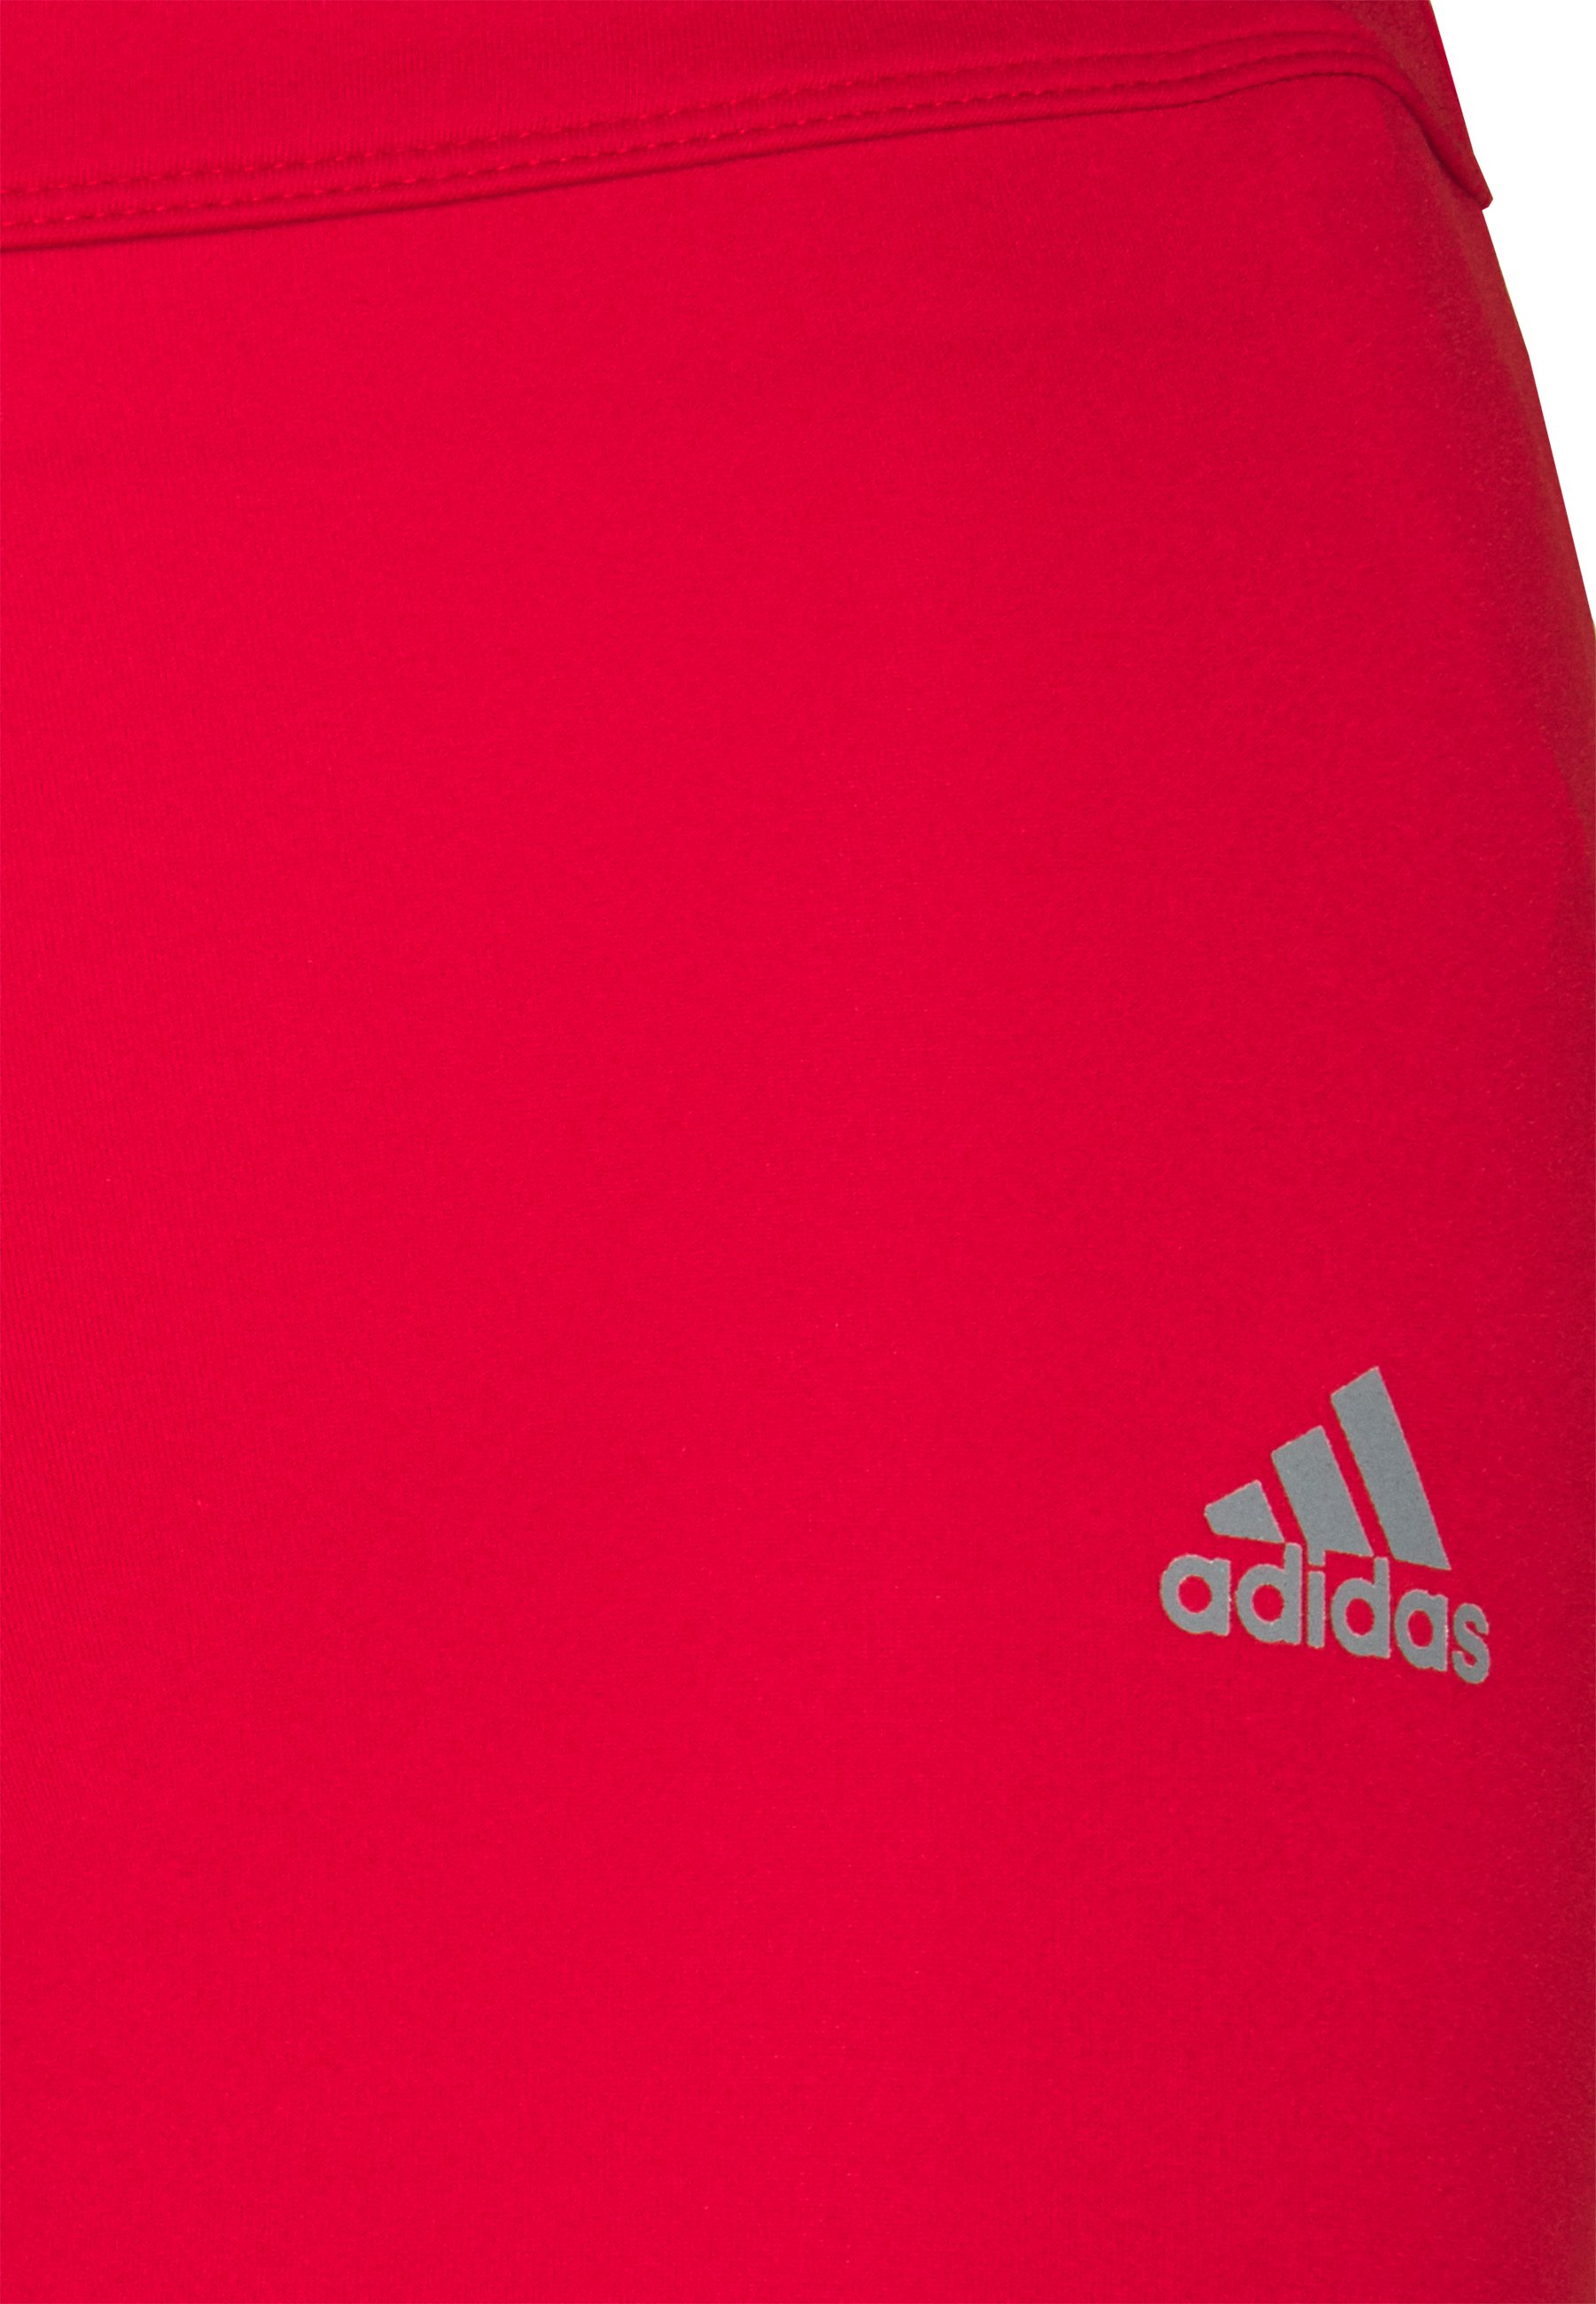 adidas Performance RUN IT 3-STRIPES 7/8 LEGGINGS - Leggings - scarlett 42ltP